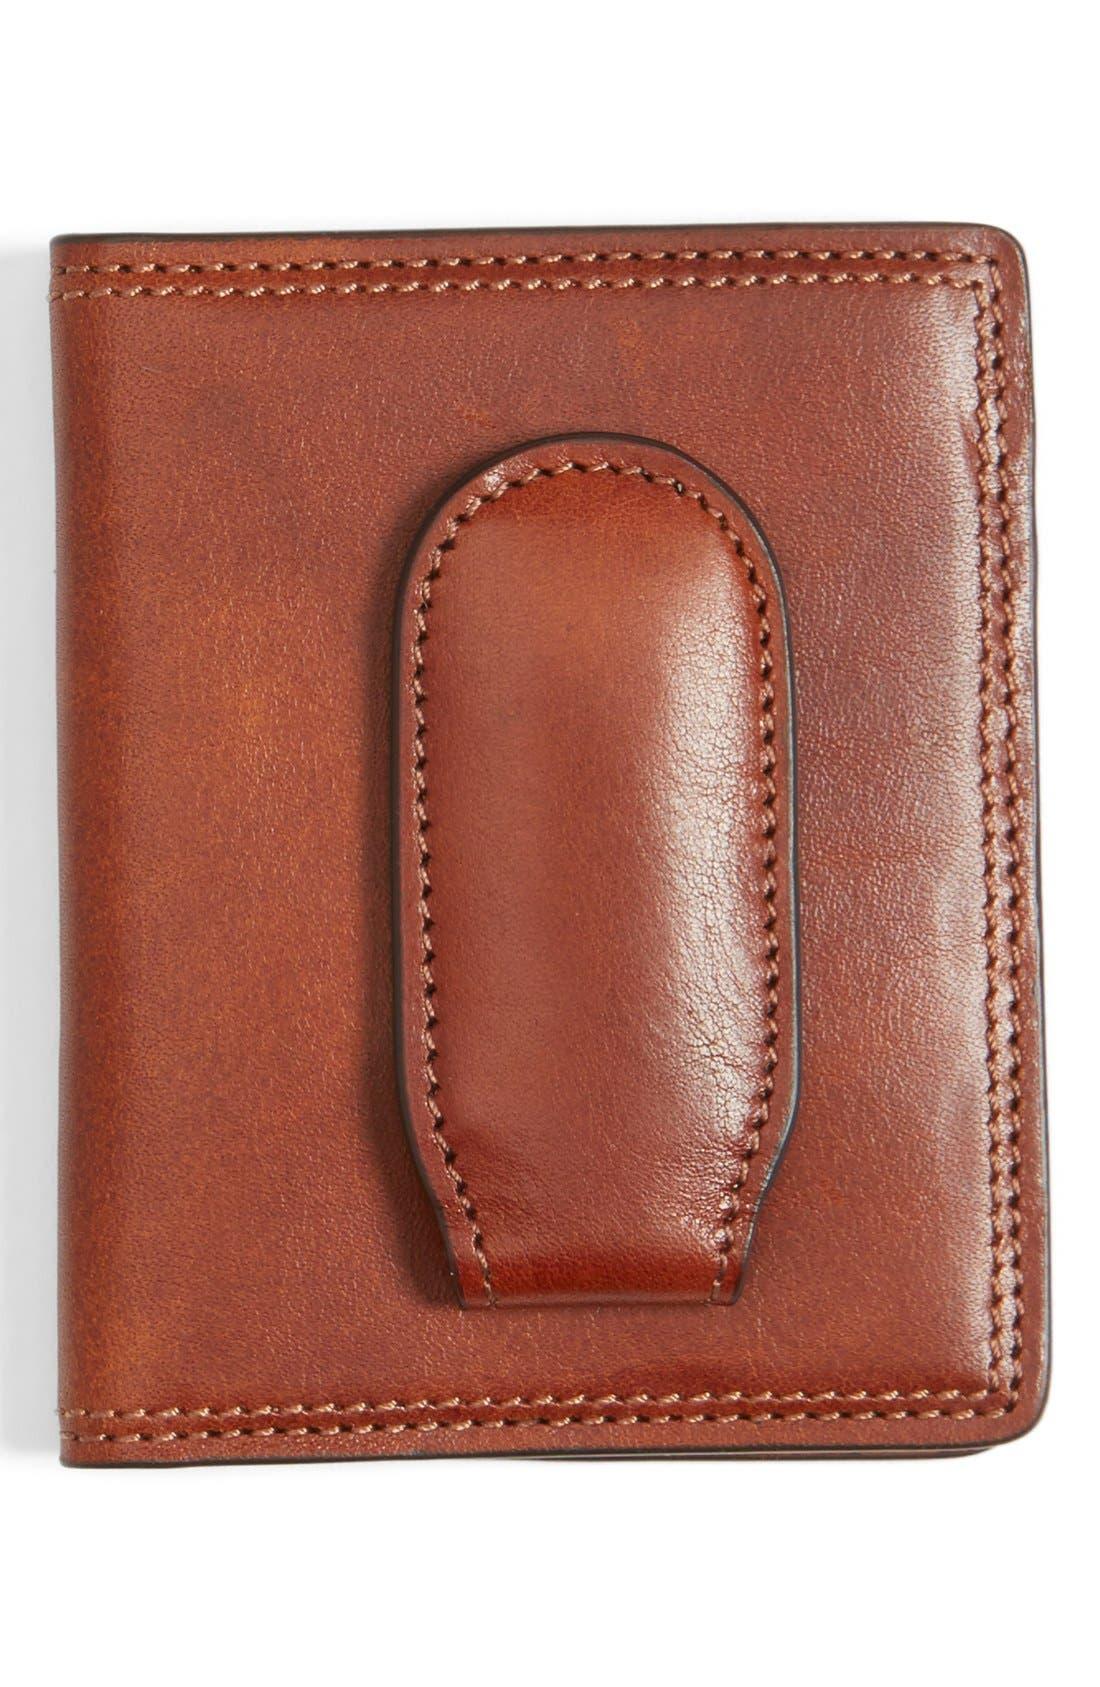 Leather Front Pocket Money Clip Wallet,                         Main,                         color, 233